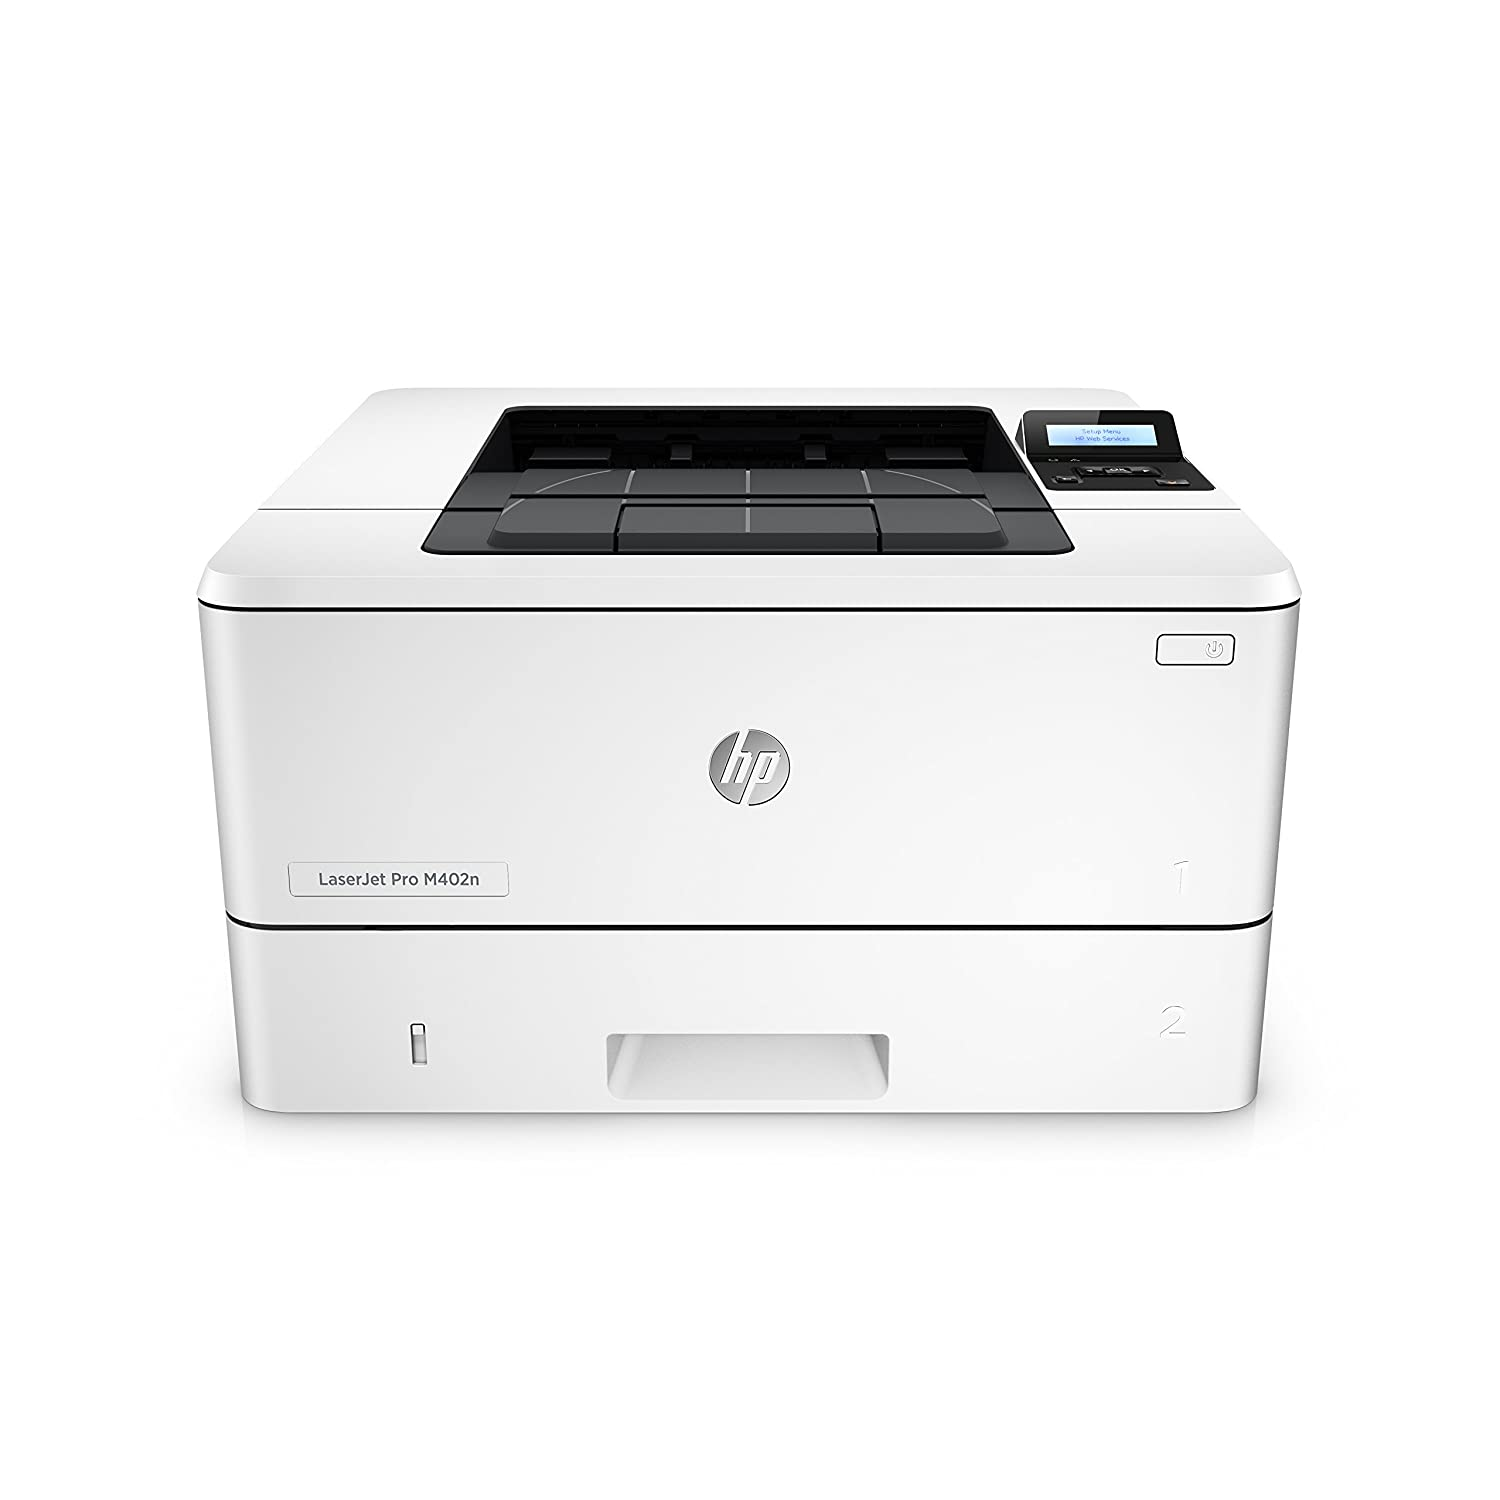 Top 11 Best Printers for Teachers under $100 Reviews 11